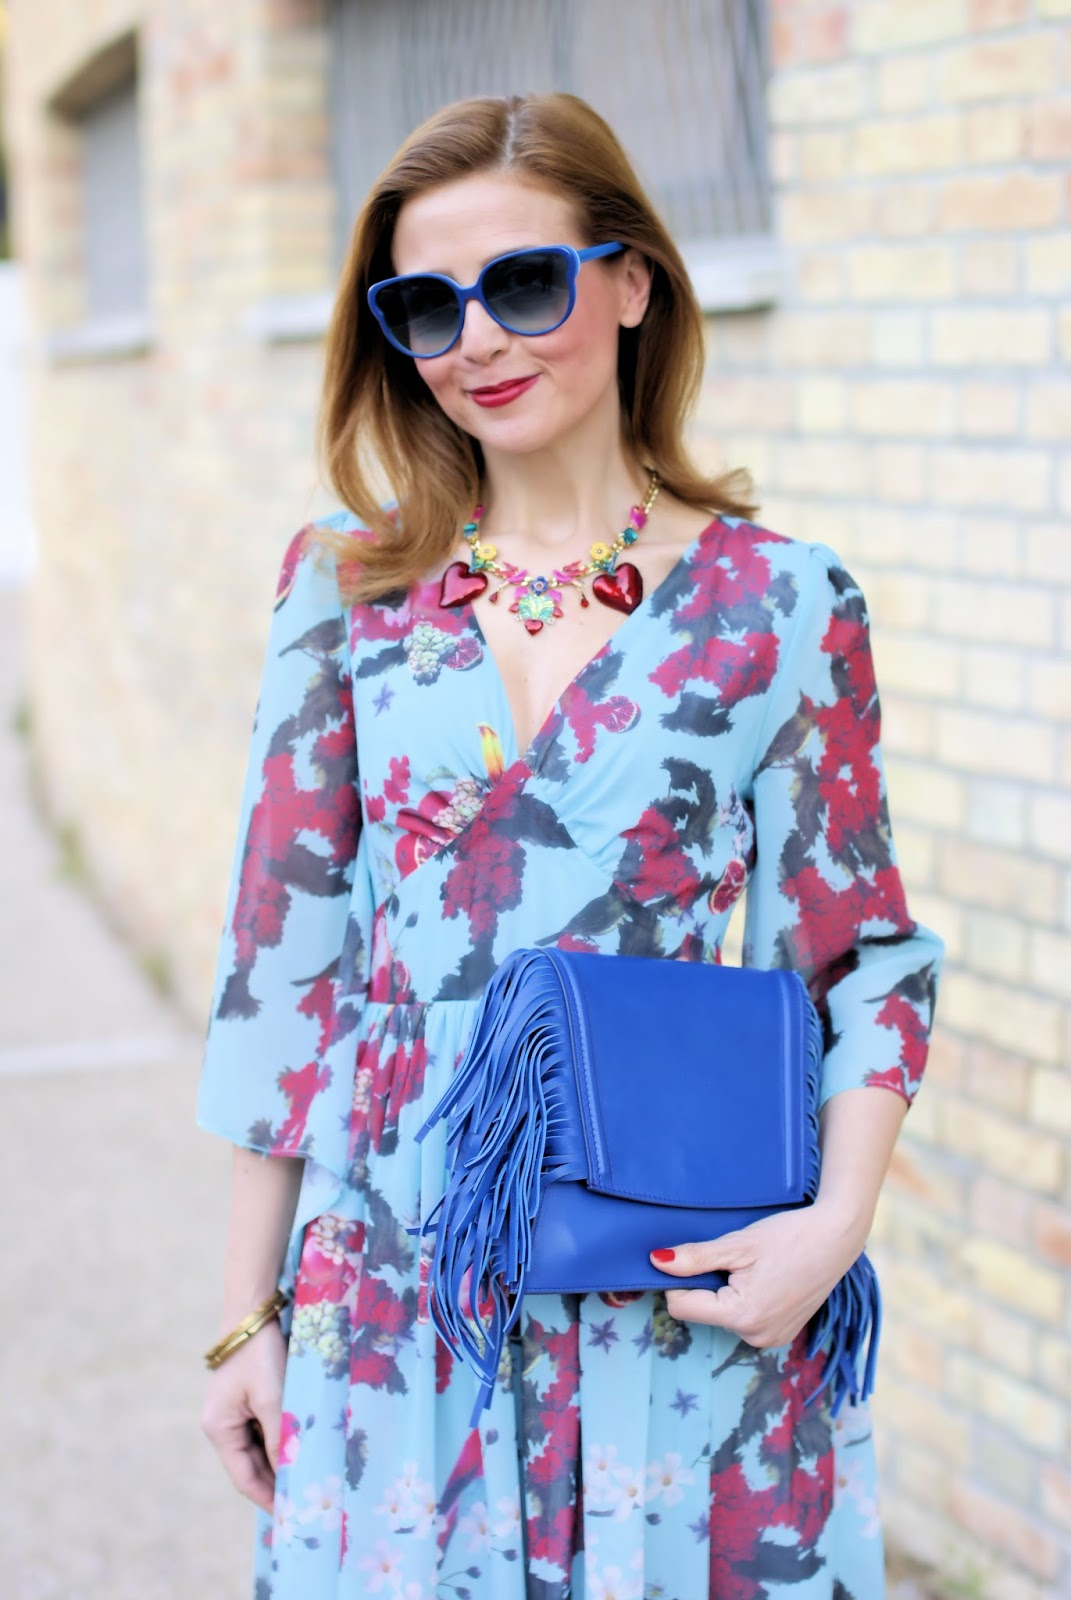 Metisu dress and Iaya Asciani clutch on Fashion and Cookies fashion blog, fashion blogger style